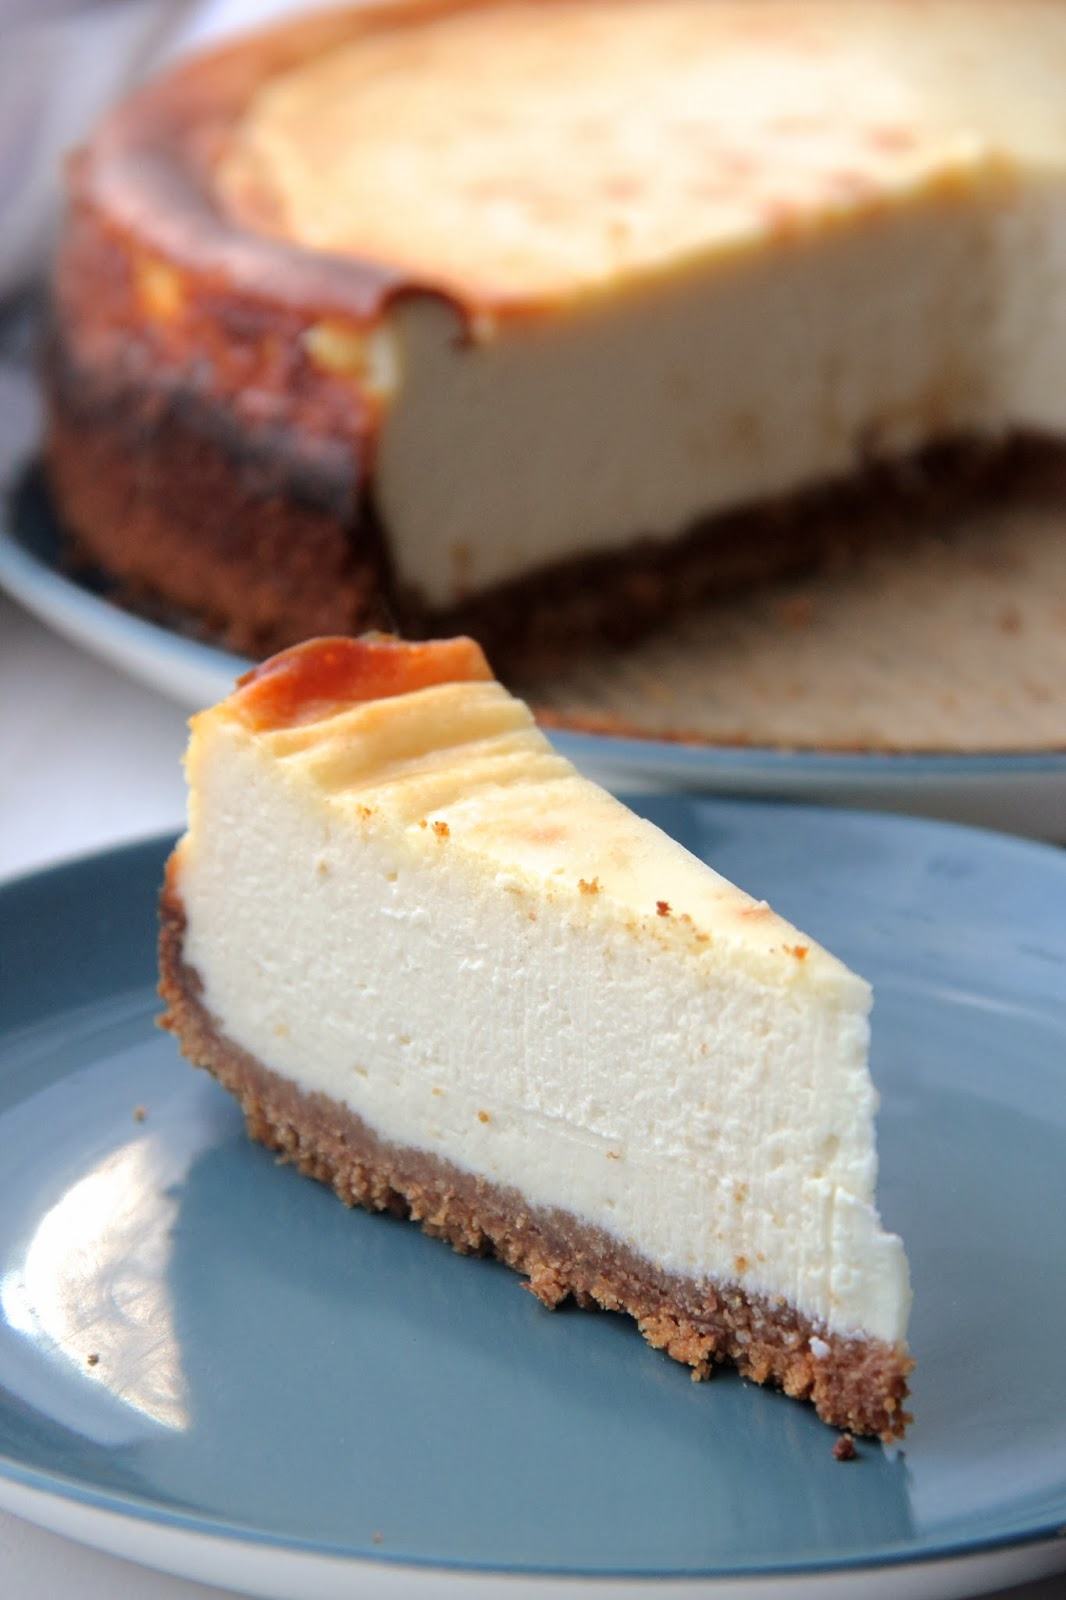 glutton in London: New York Style Cheesecake